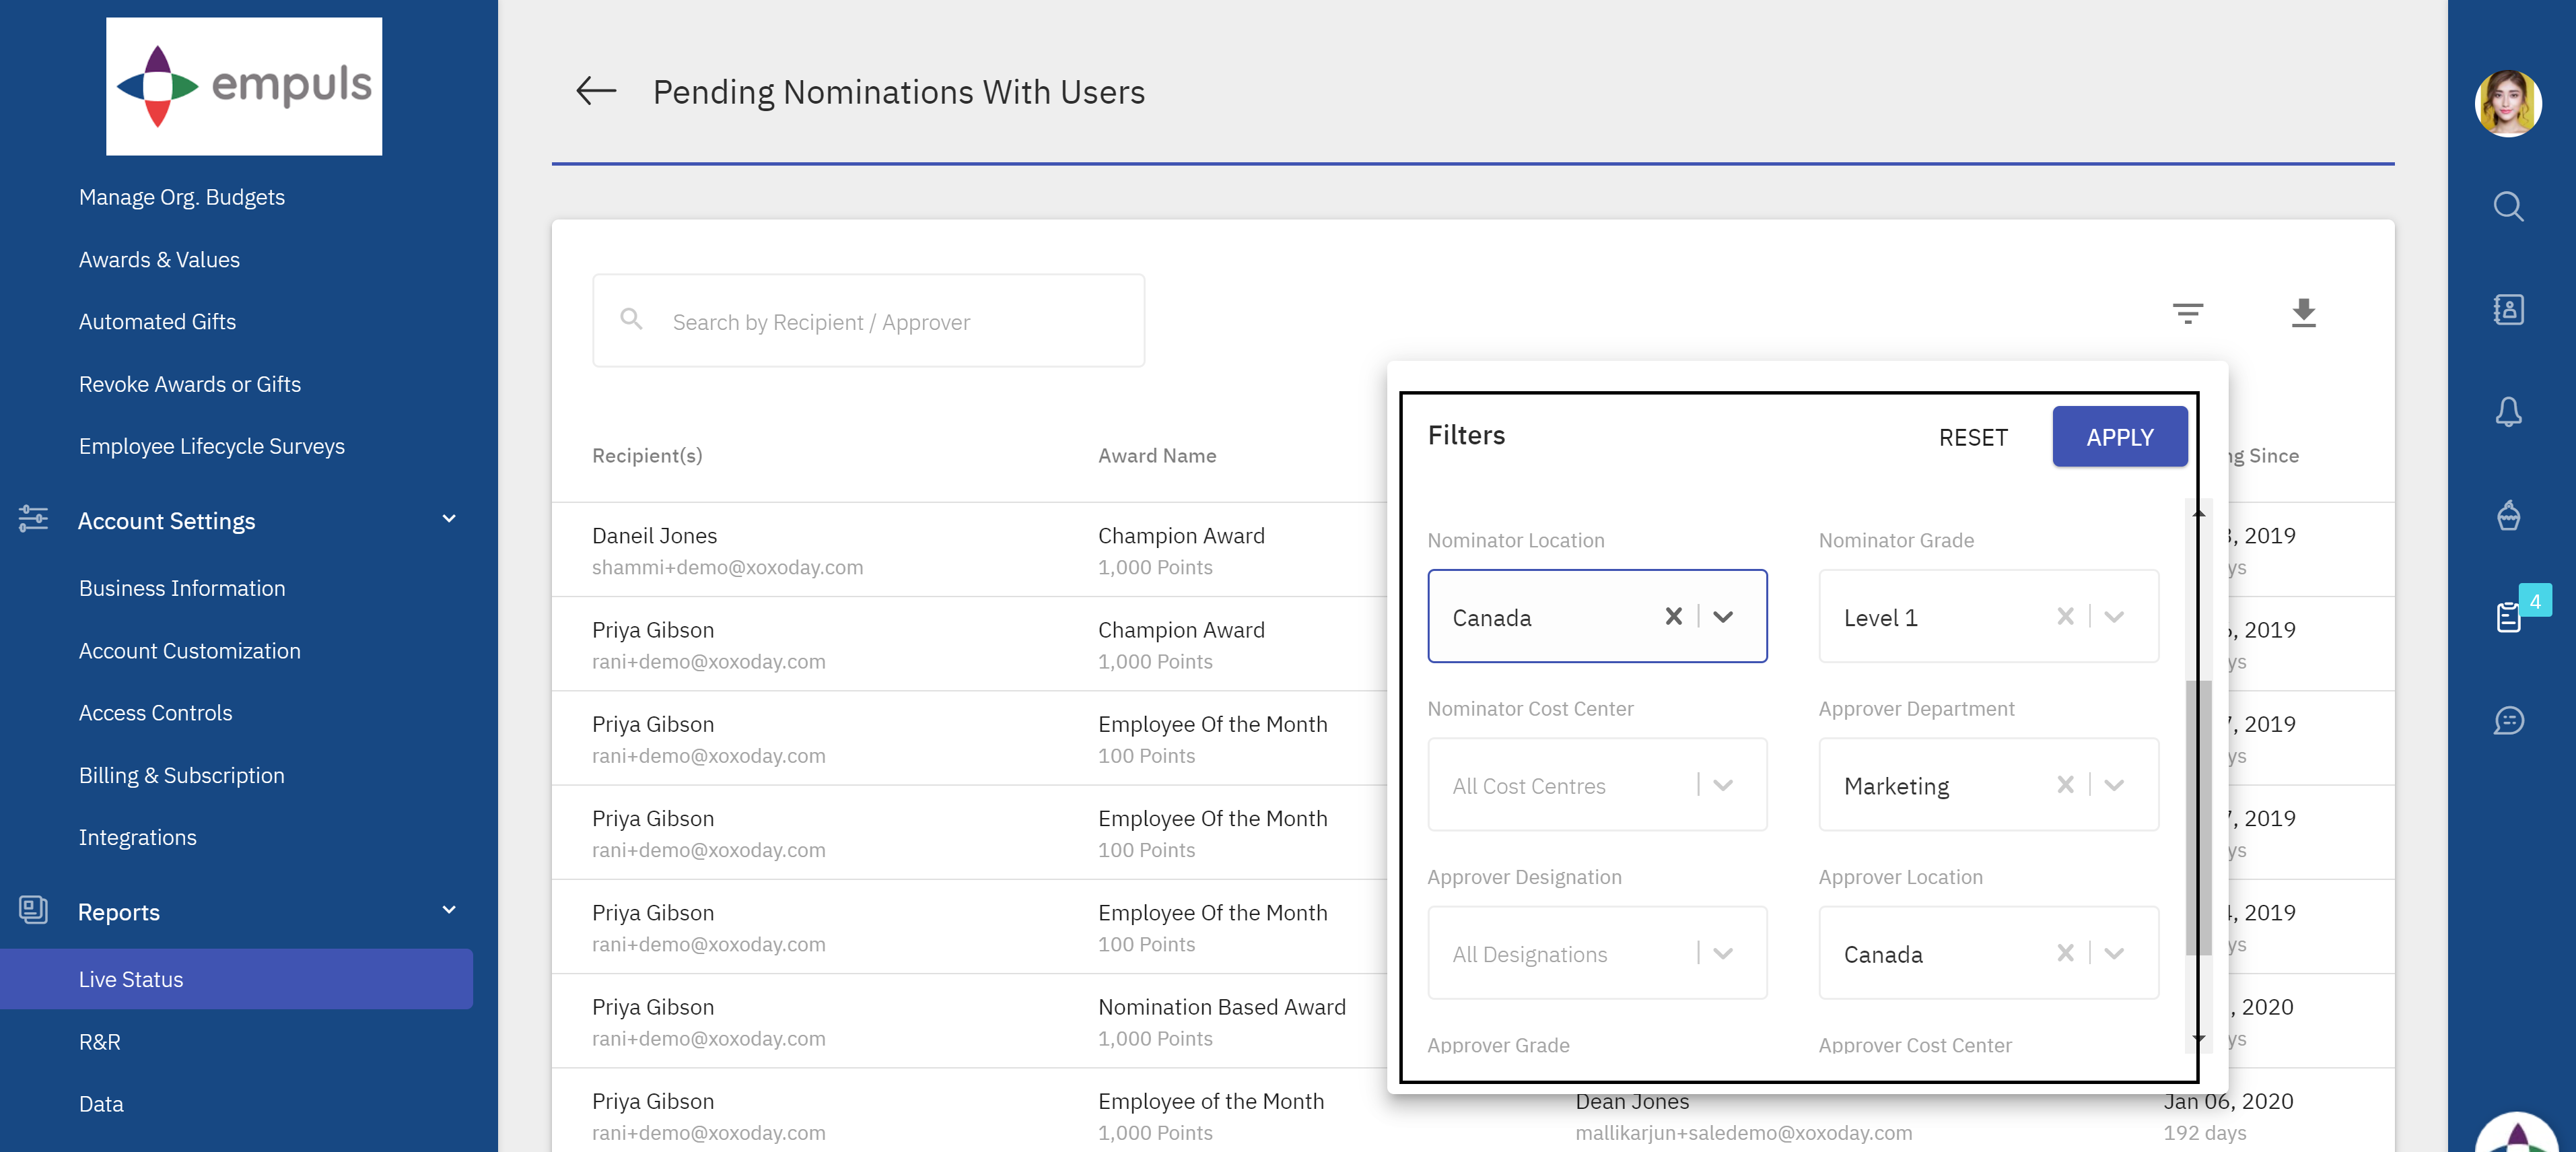 Pending Nominations - Filters